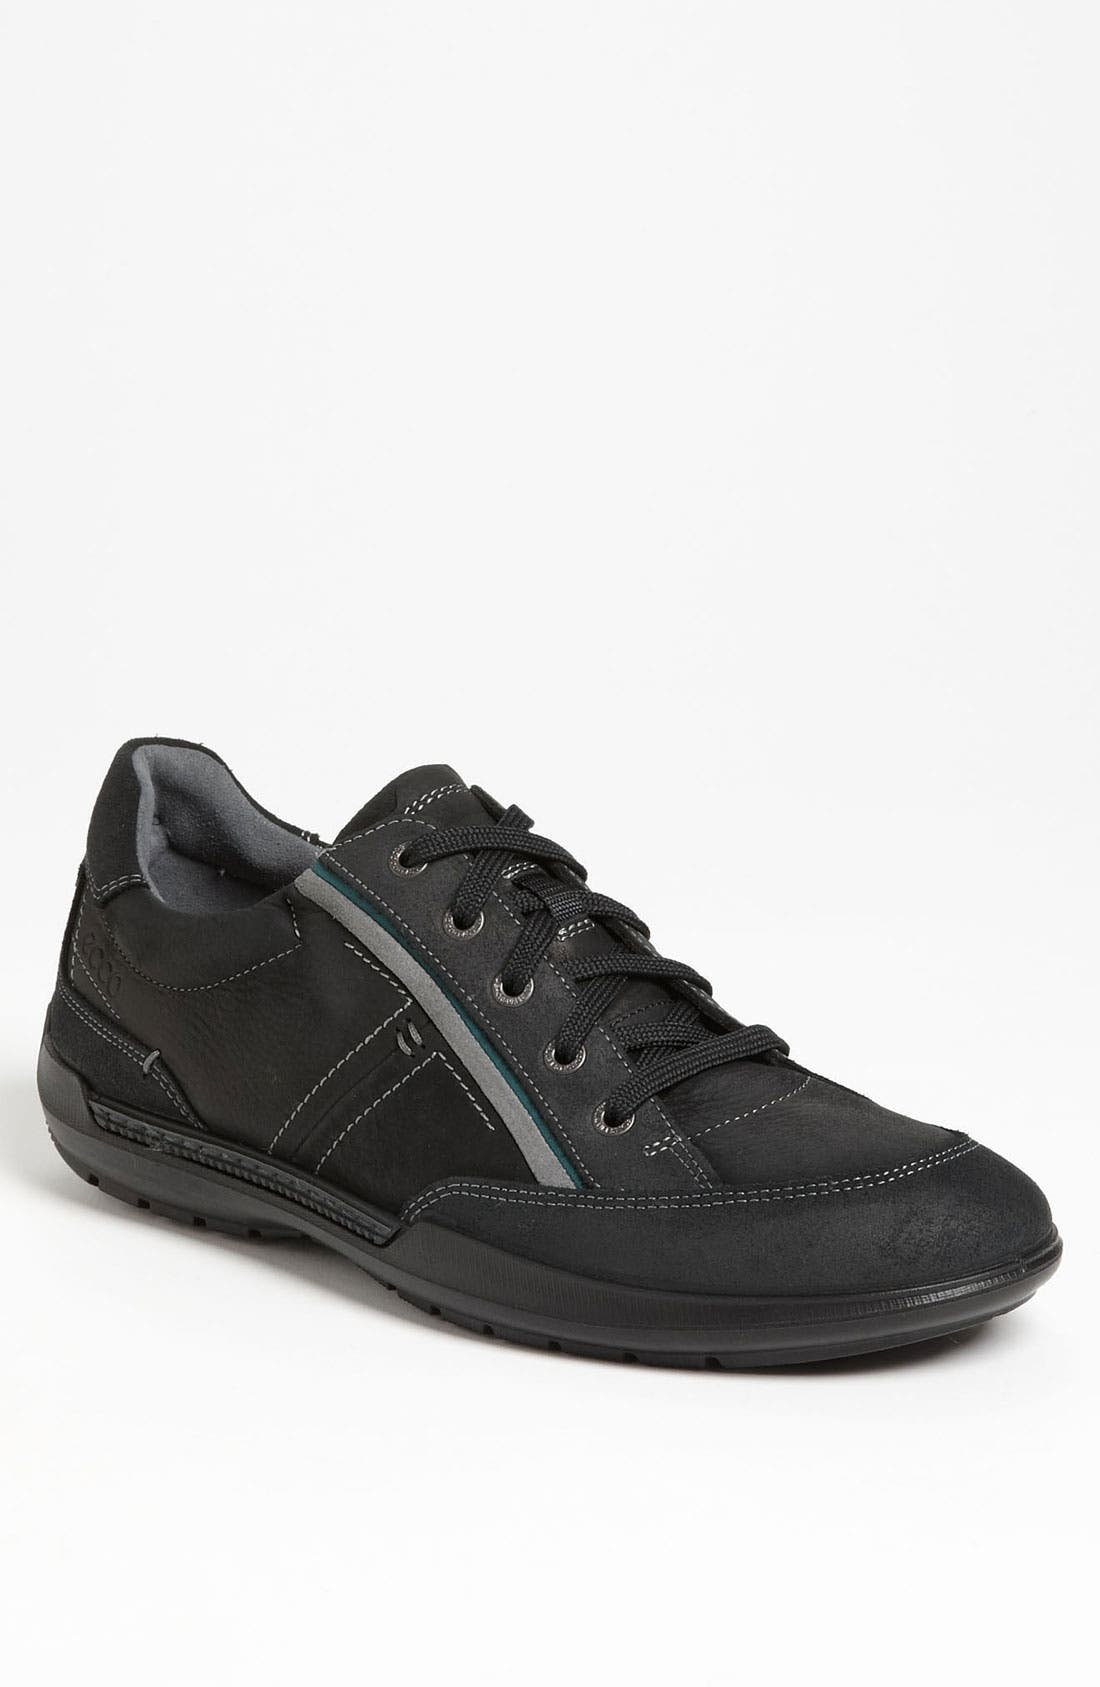 Alternate Image 1 Selected - ECCO 'Welt' Sneaker